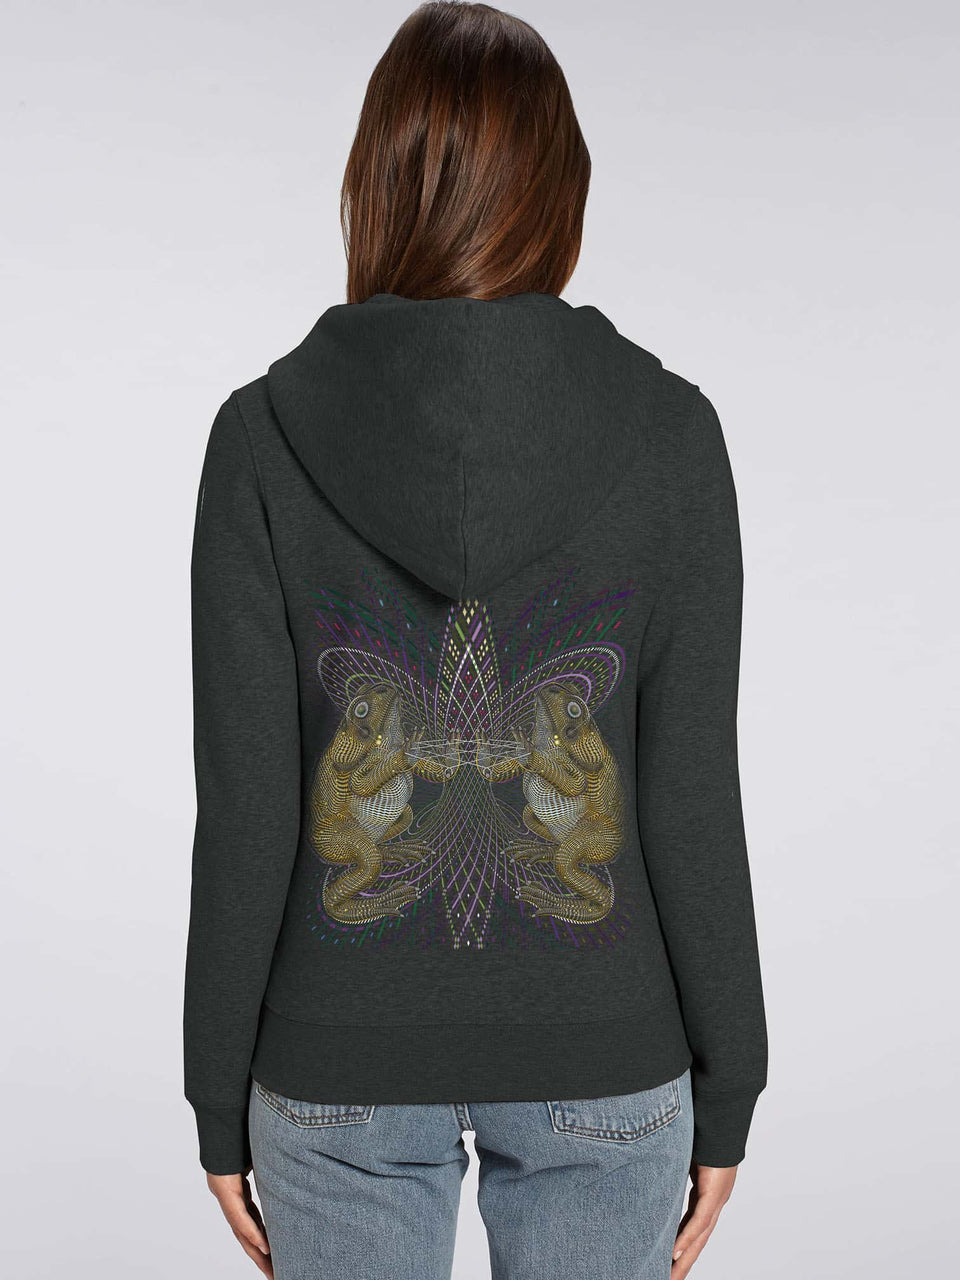 Bufo Alvarius Made To Order  Women zip-thru hoodie sweatshirt - Dark Heather